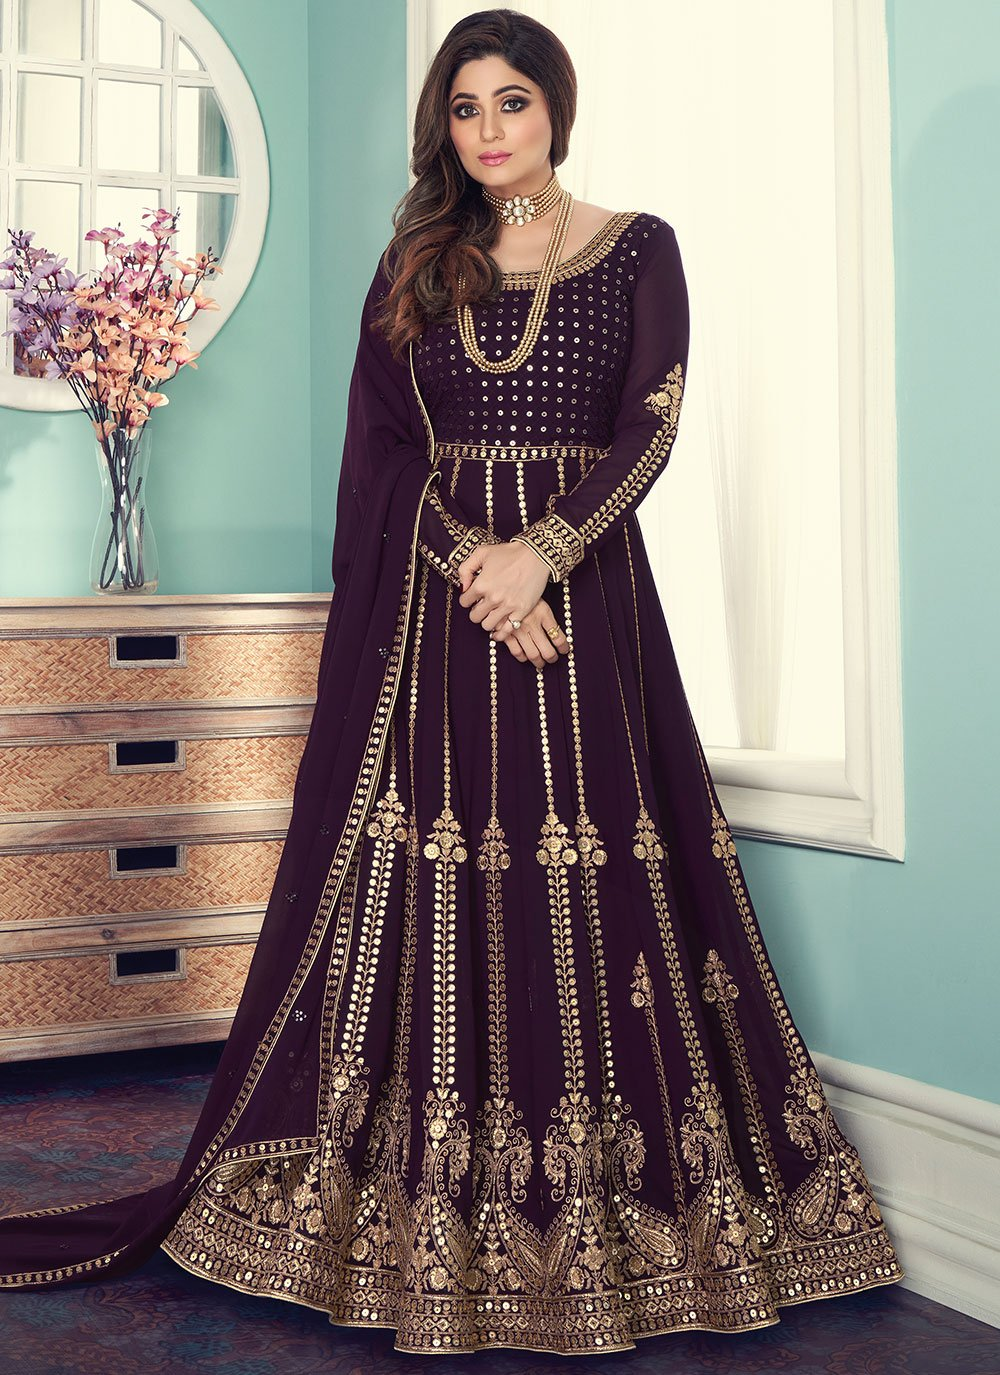 Shamita Shetty Faux Georgette Embroidered Designer Floor Length Suit